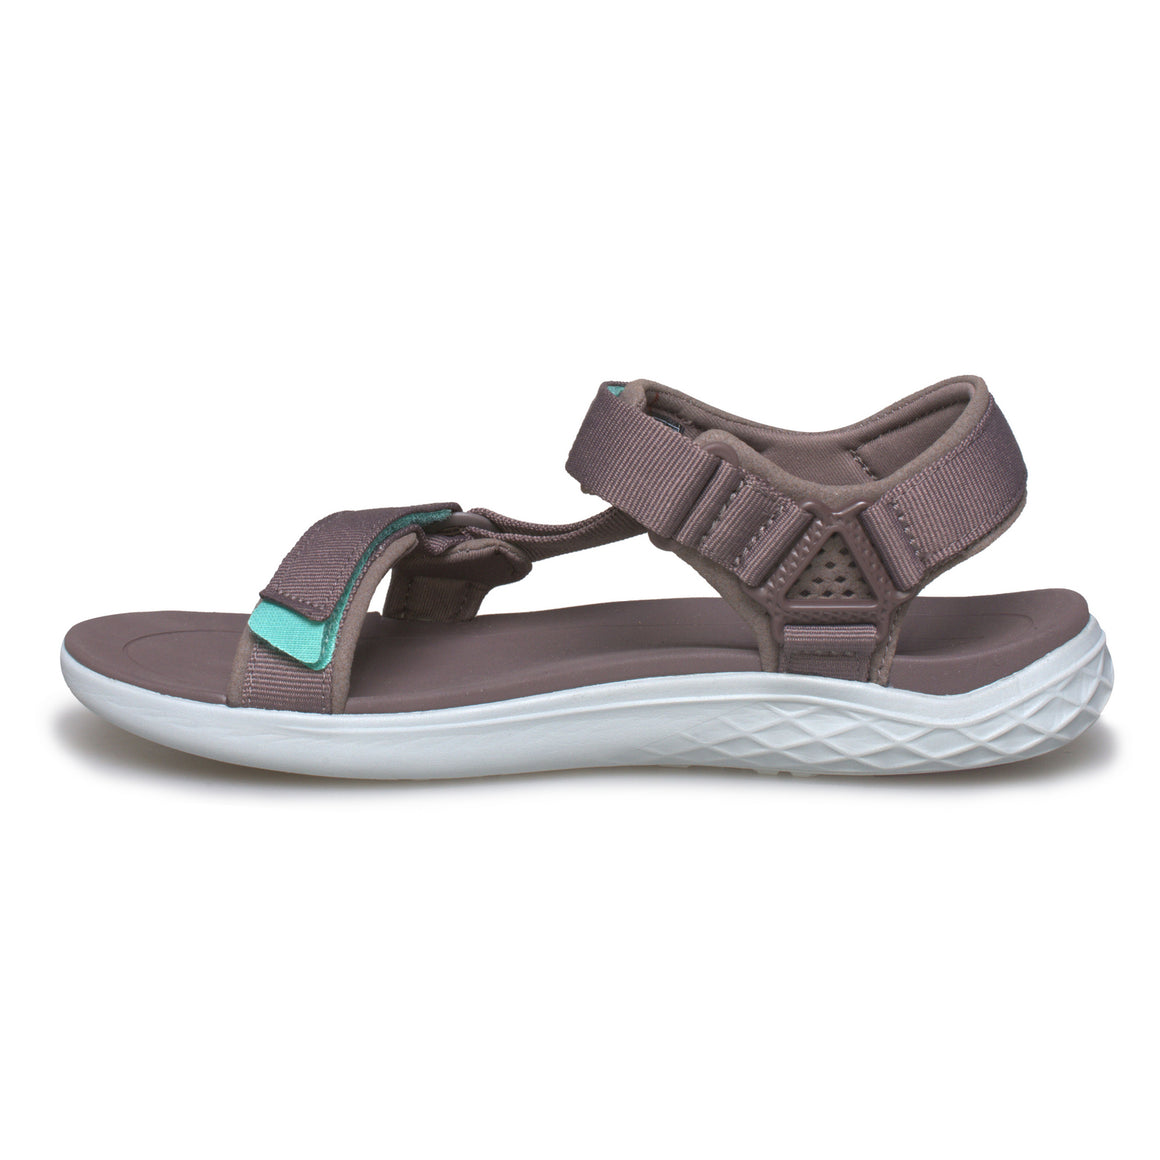 Teva Terra Float 2 Universal Plum Truffle Sandals - Women's